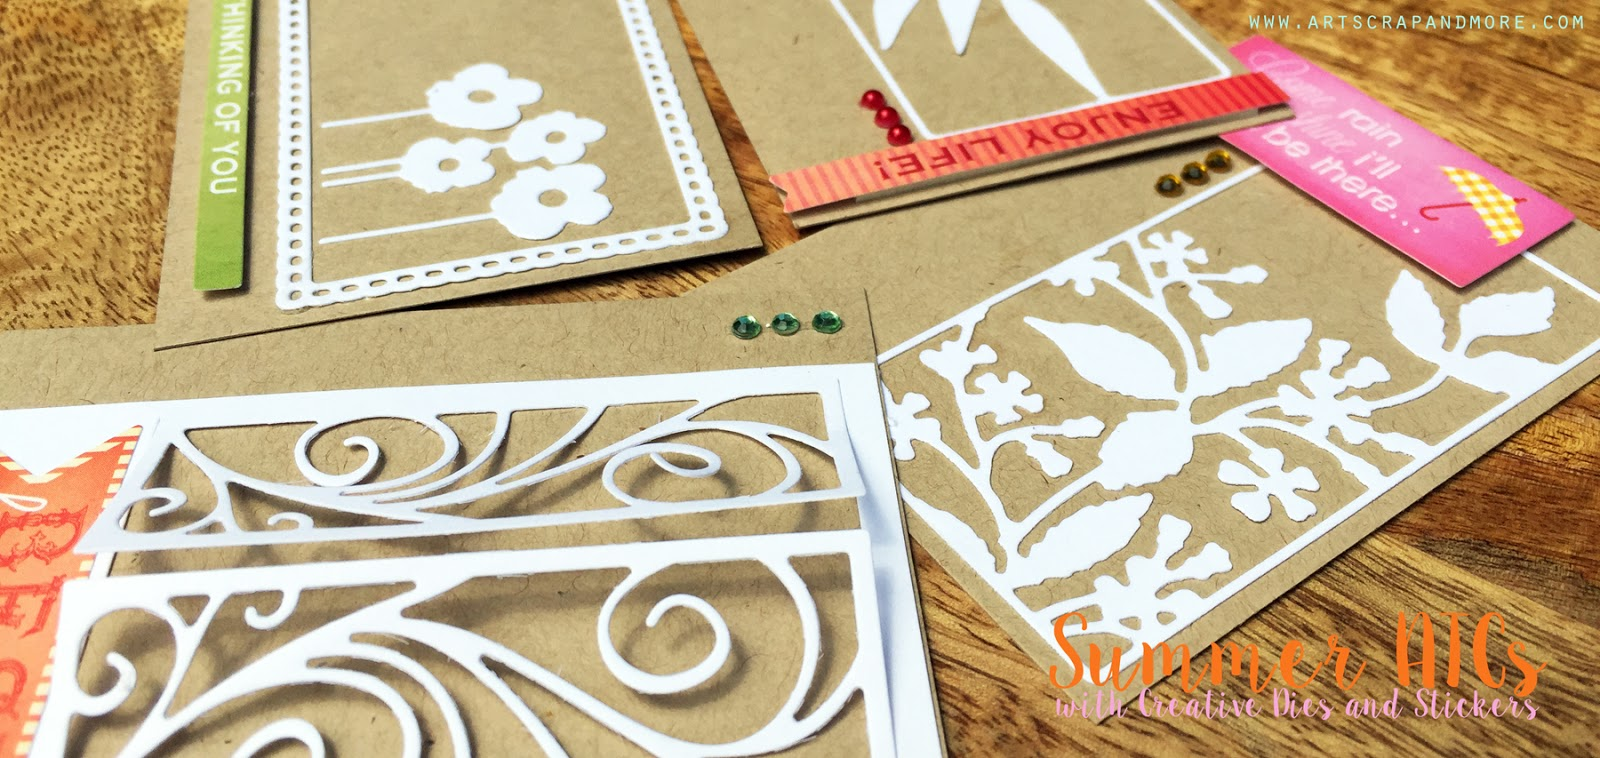 How to make scrapbook creative - Welcome To Another Edition Of Scrapbooking With Penny Black Products I Love To Make Atcs In The Summer Time And There S Something About Playing With White